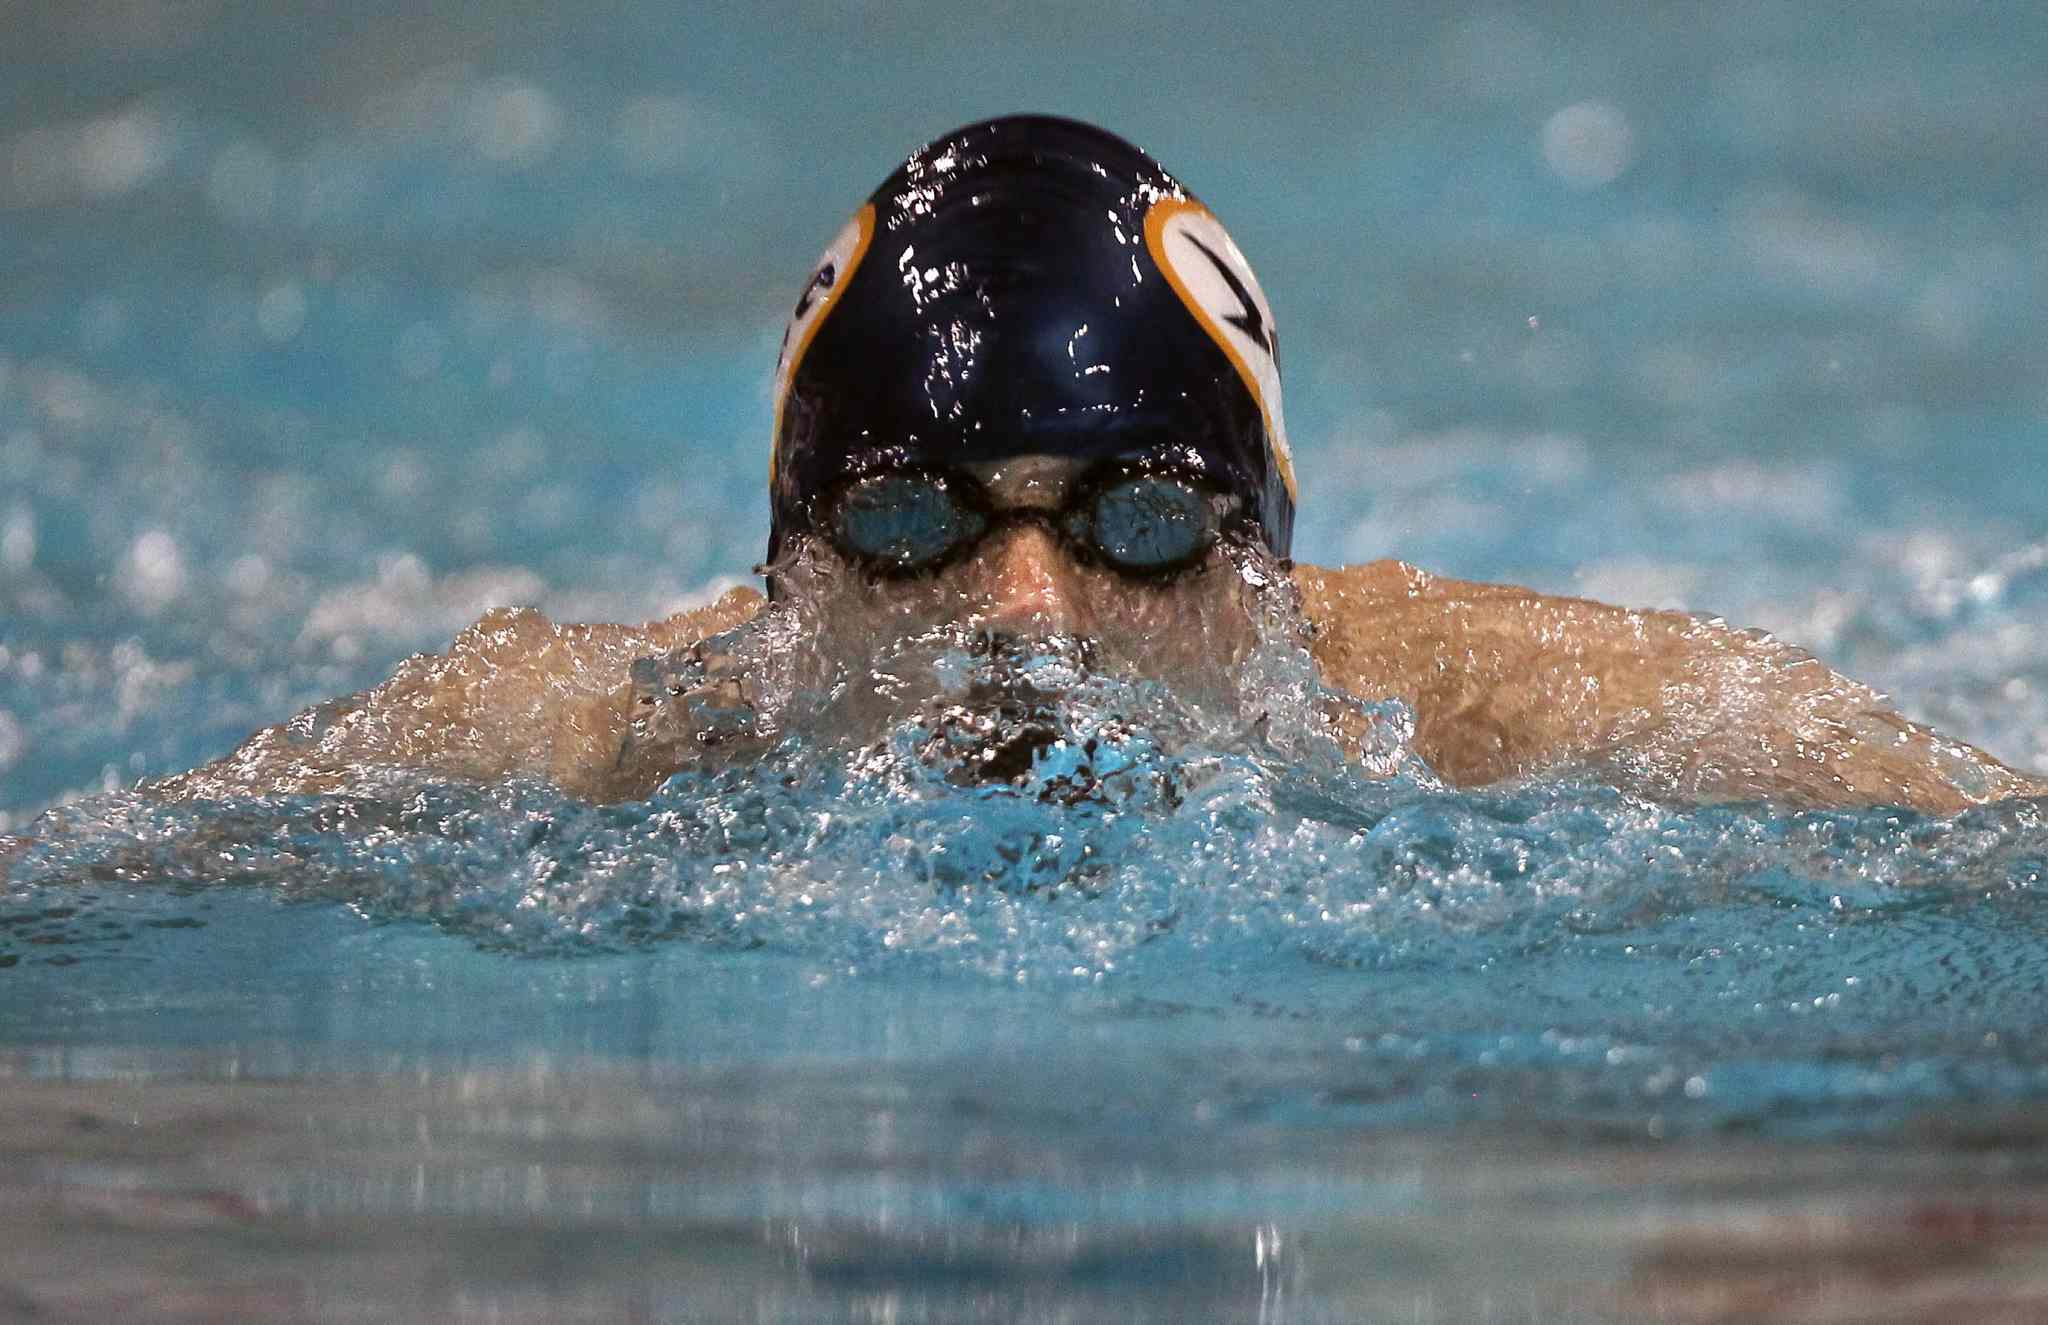 Kaelan Freund of the LA Swim Club emerges from the water during his 15 year old boys' 100m breaststroke final at the 2014 Canadian Age Group Championships at Pan Am Pool in Winnipeg. (JOE BRYKSA / WINNIPEG FREE PRESS)